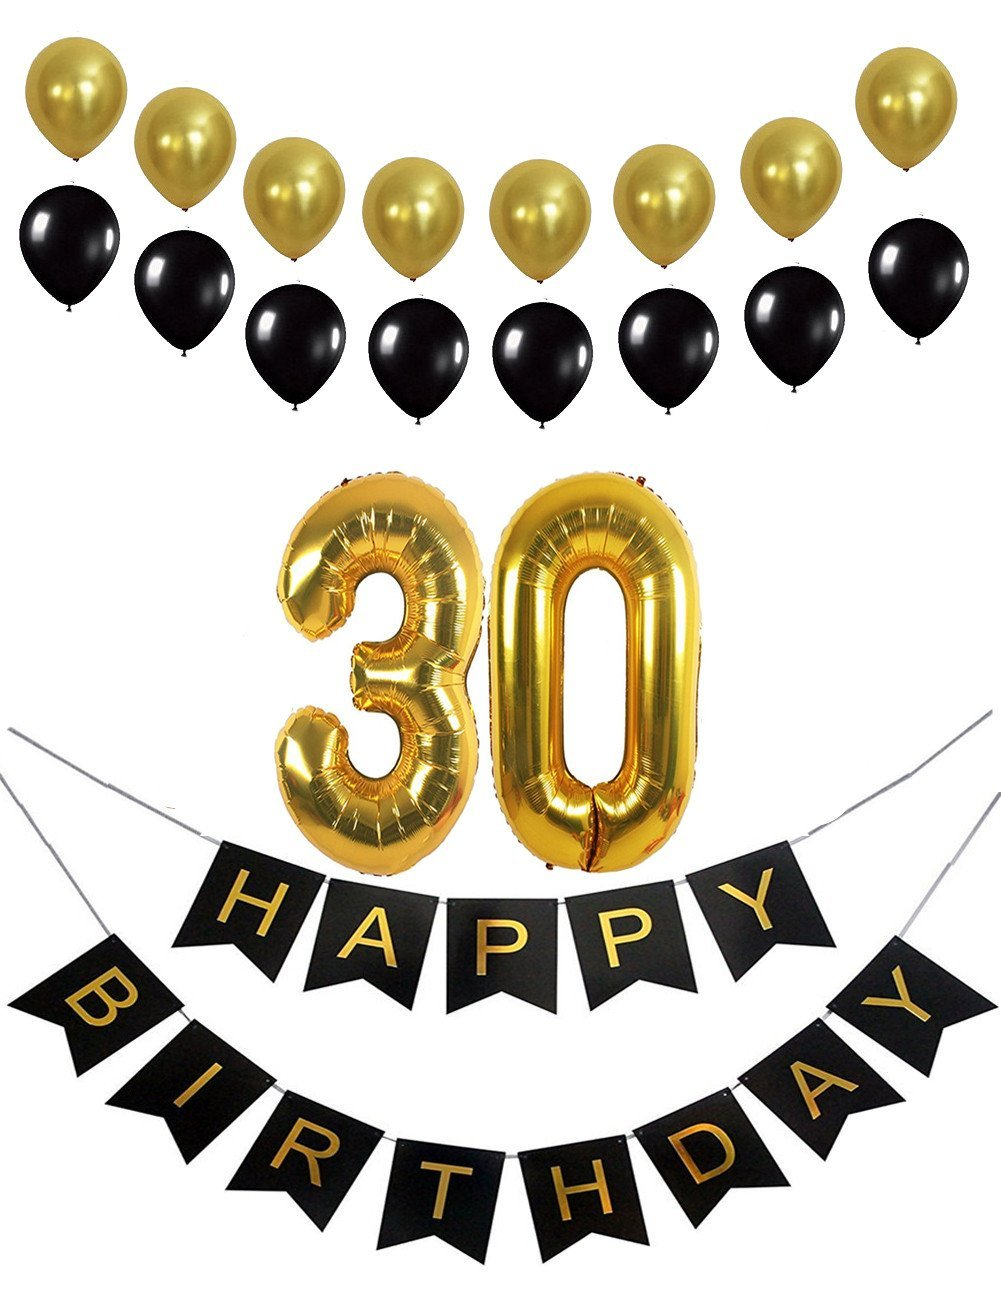 30th birthday banner clipart picture free stock Buy 30th Birthday Decorations Happy Birthday Banner Mylar Balloons ... picture free stock